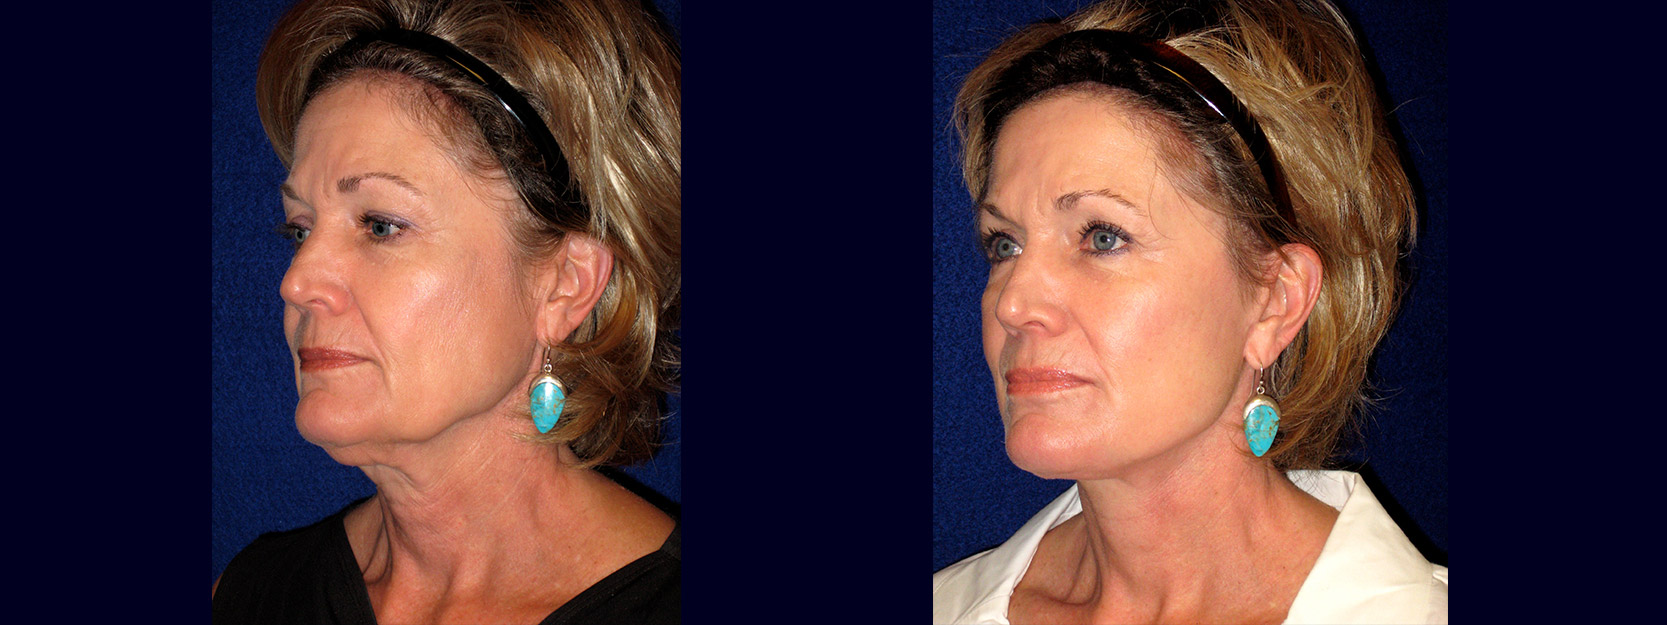 Left 3/4 View - Face and Neck Lift with Upper Eyelid Surgery